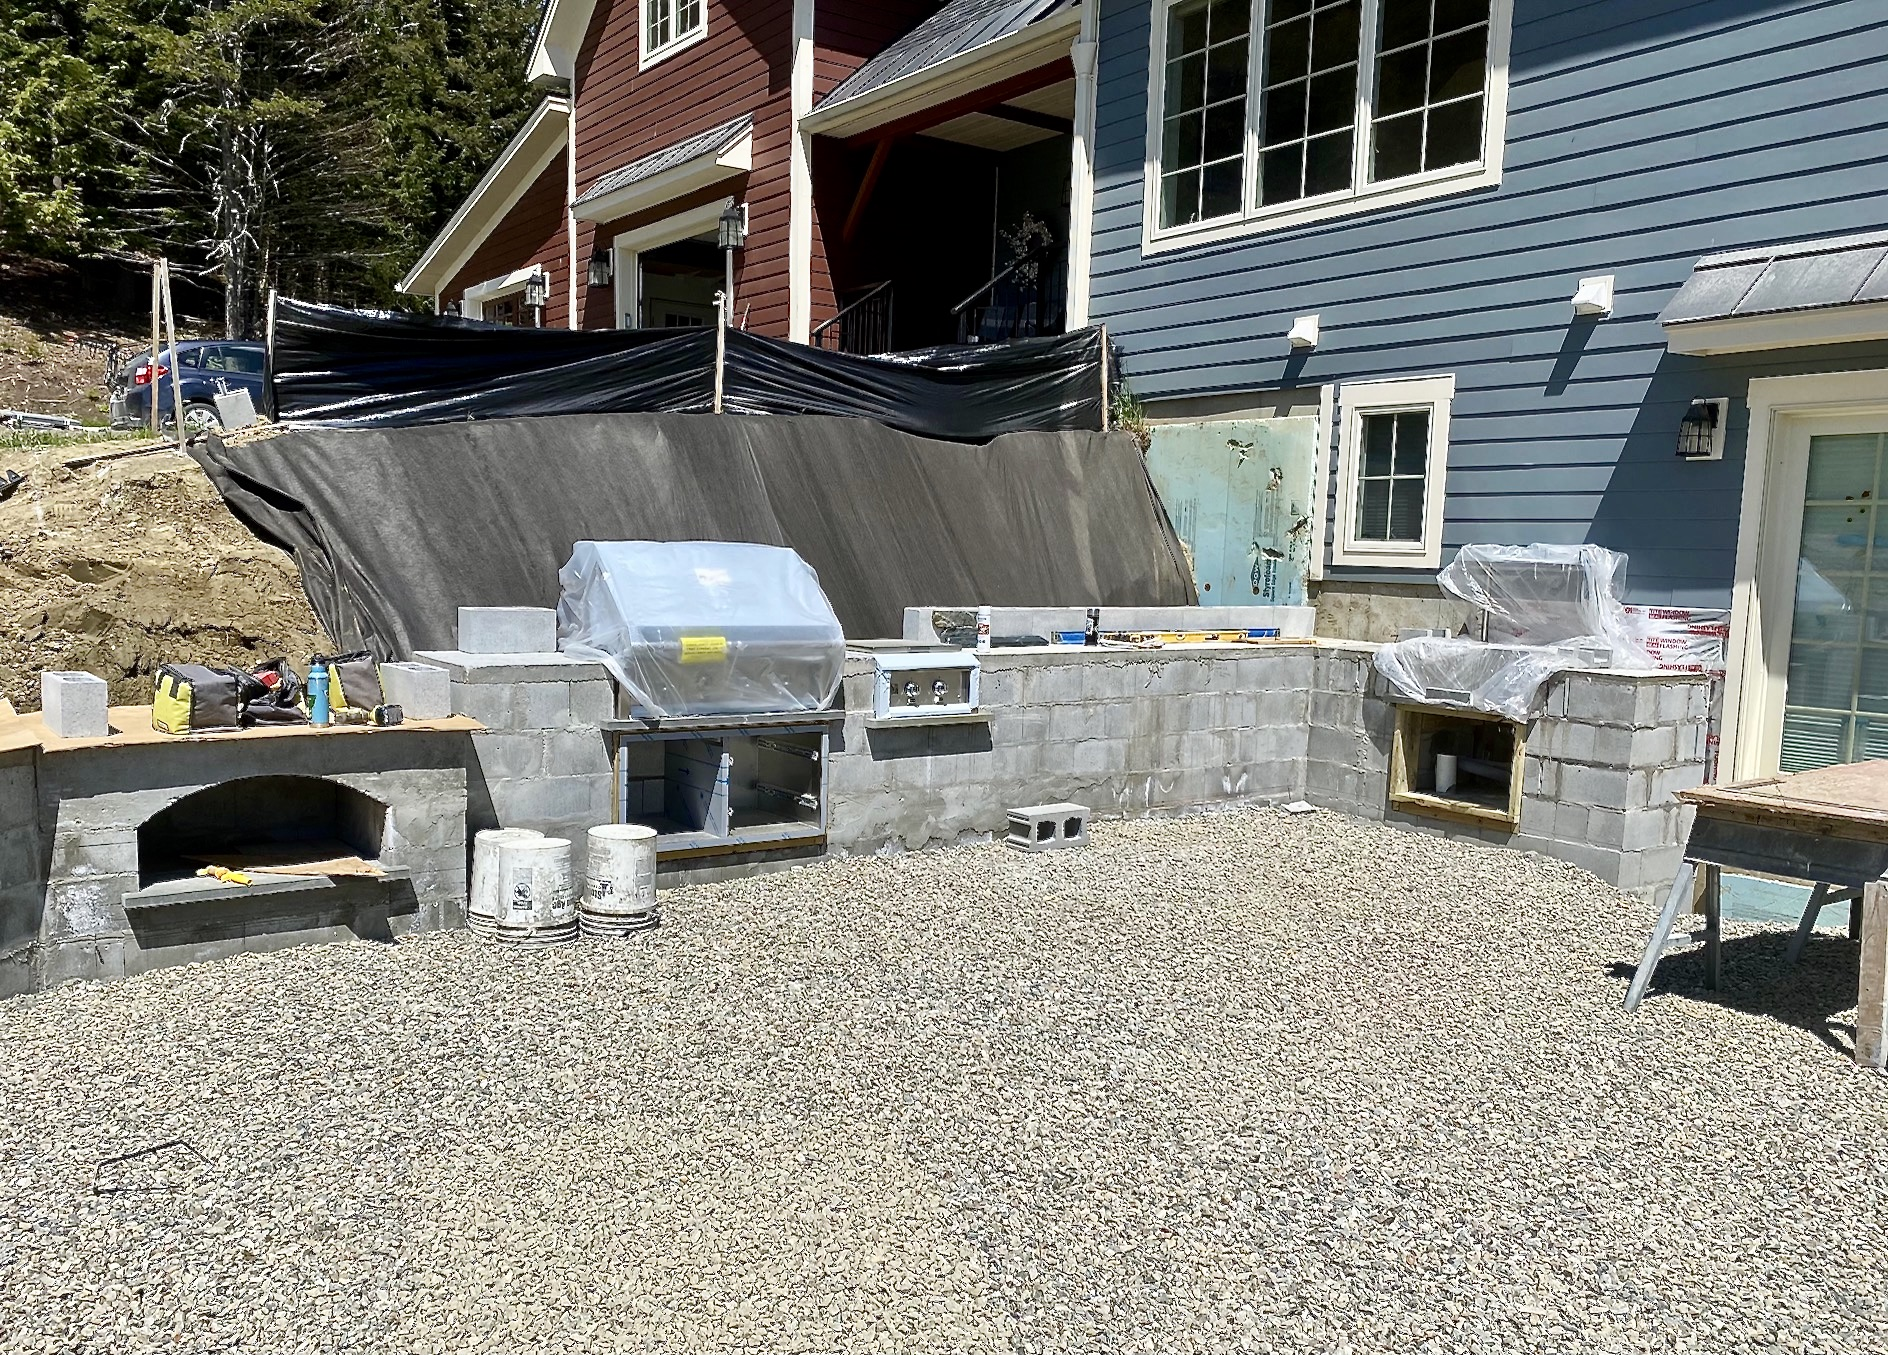 Stowe Outdoor Kitchen Construction